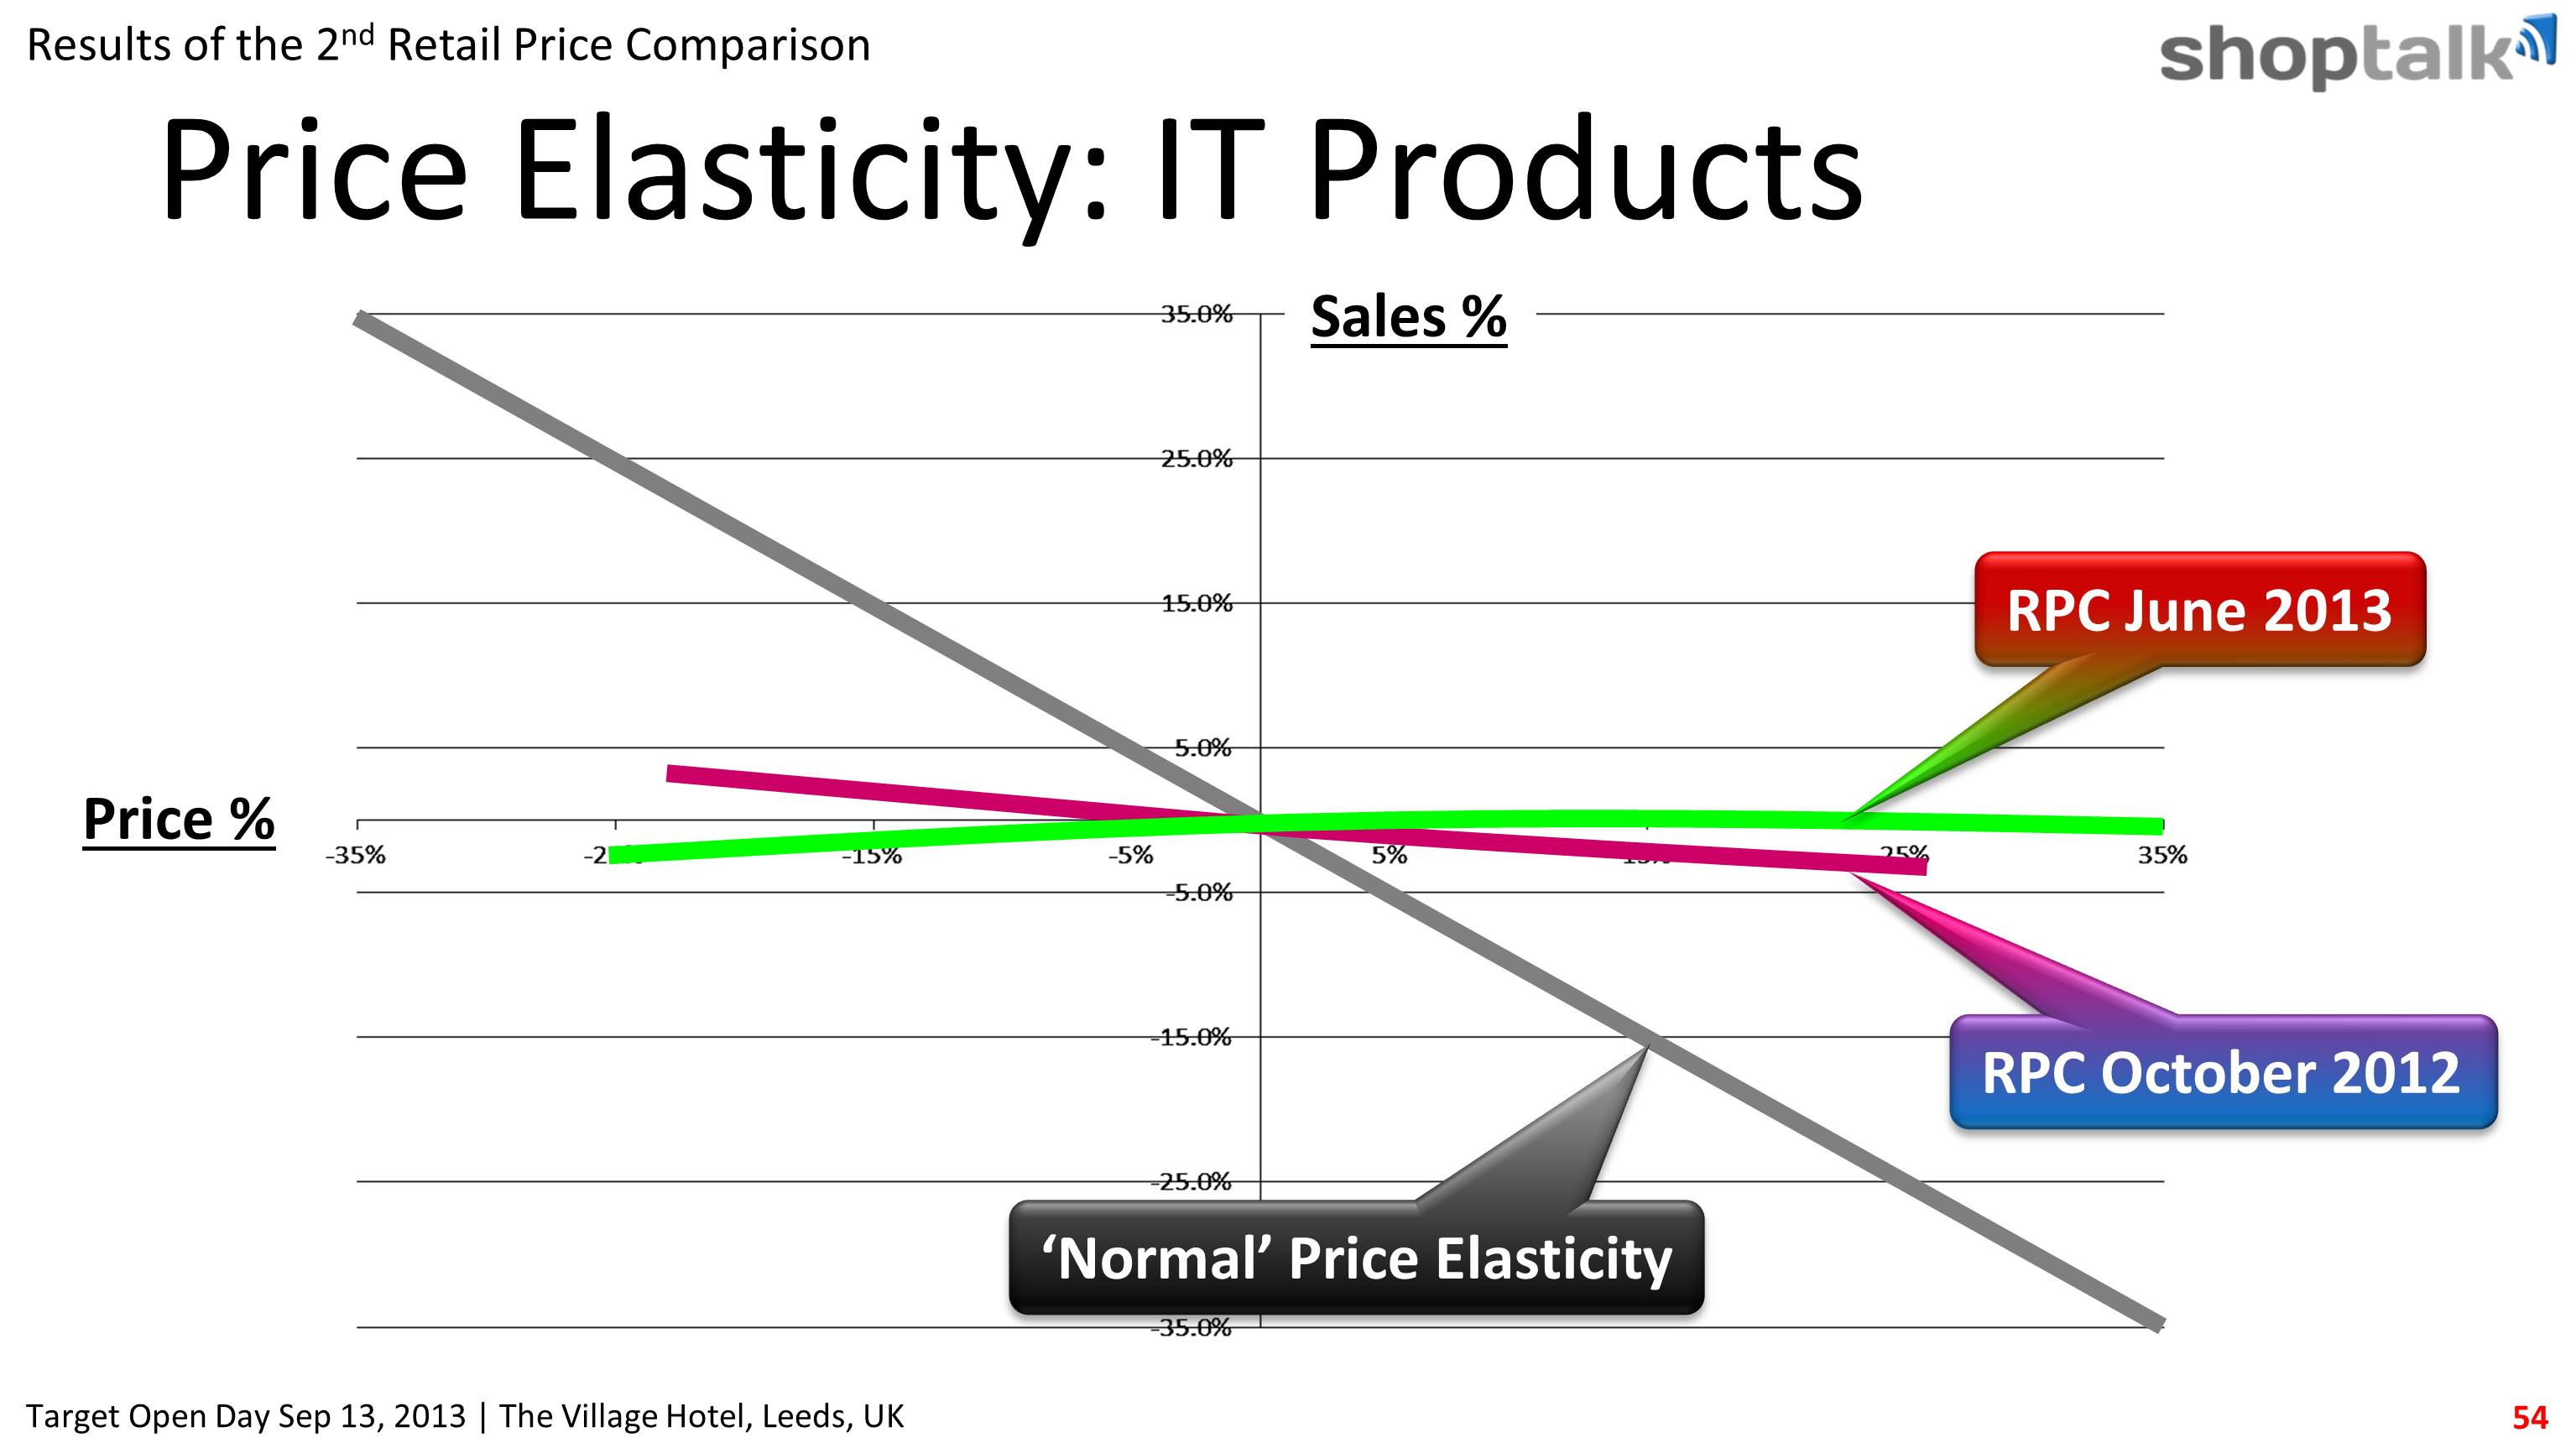 Price elasticity curves shows is IT products are price inelastic